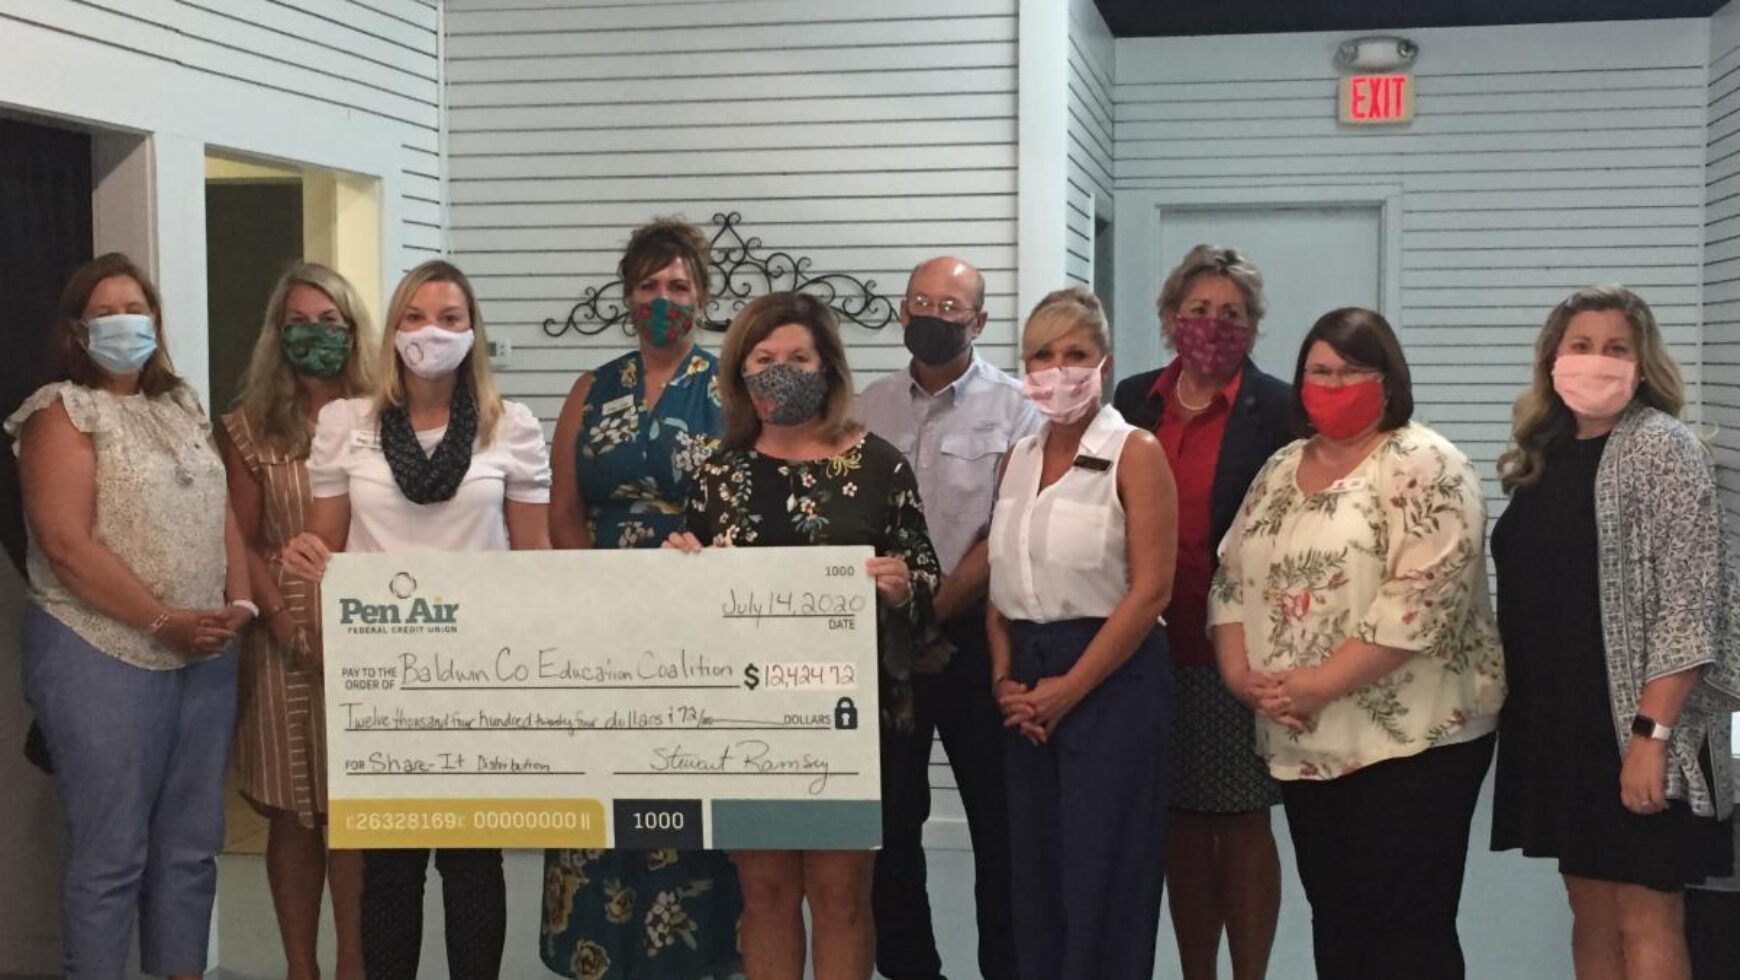 Pen Air Federal Credit Union donates $12,424 to Baldwin County Education Coalition